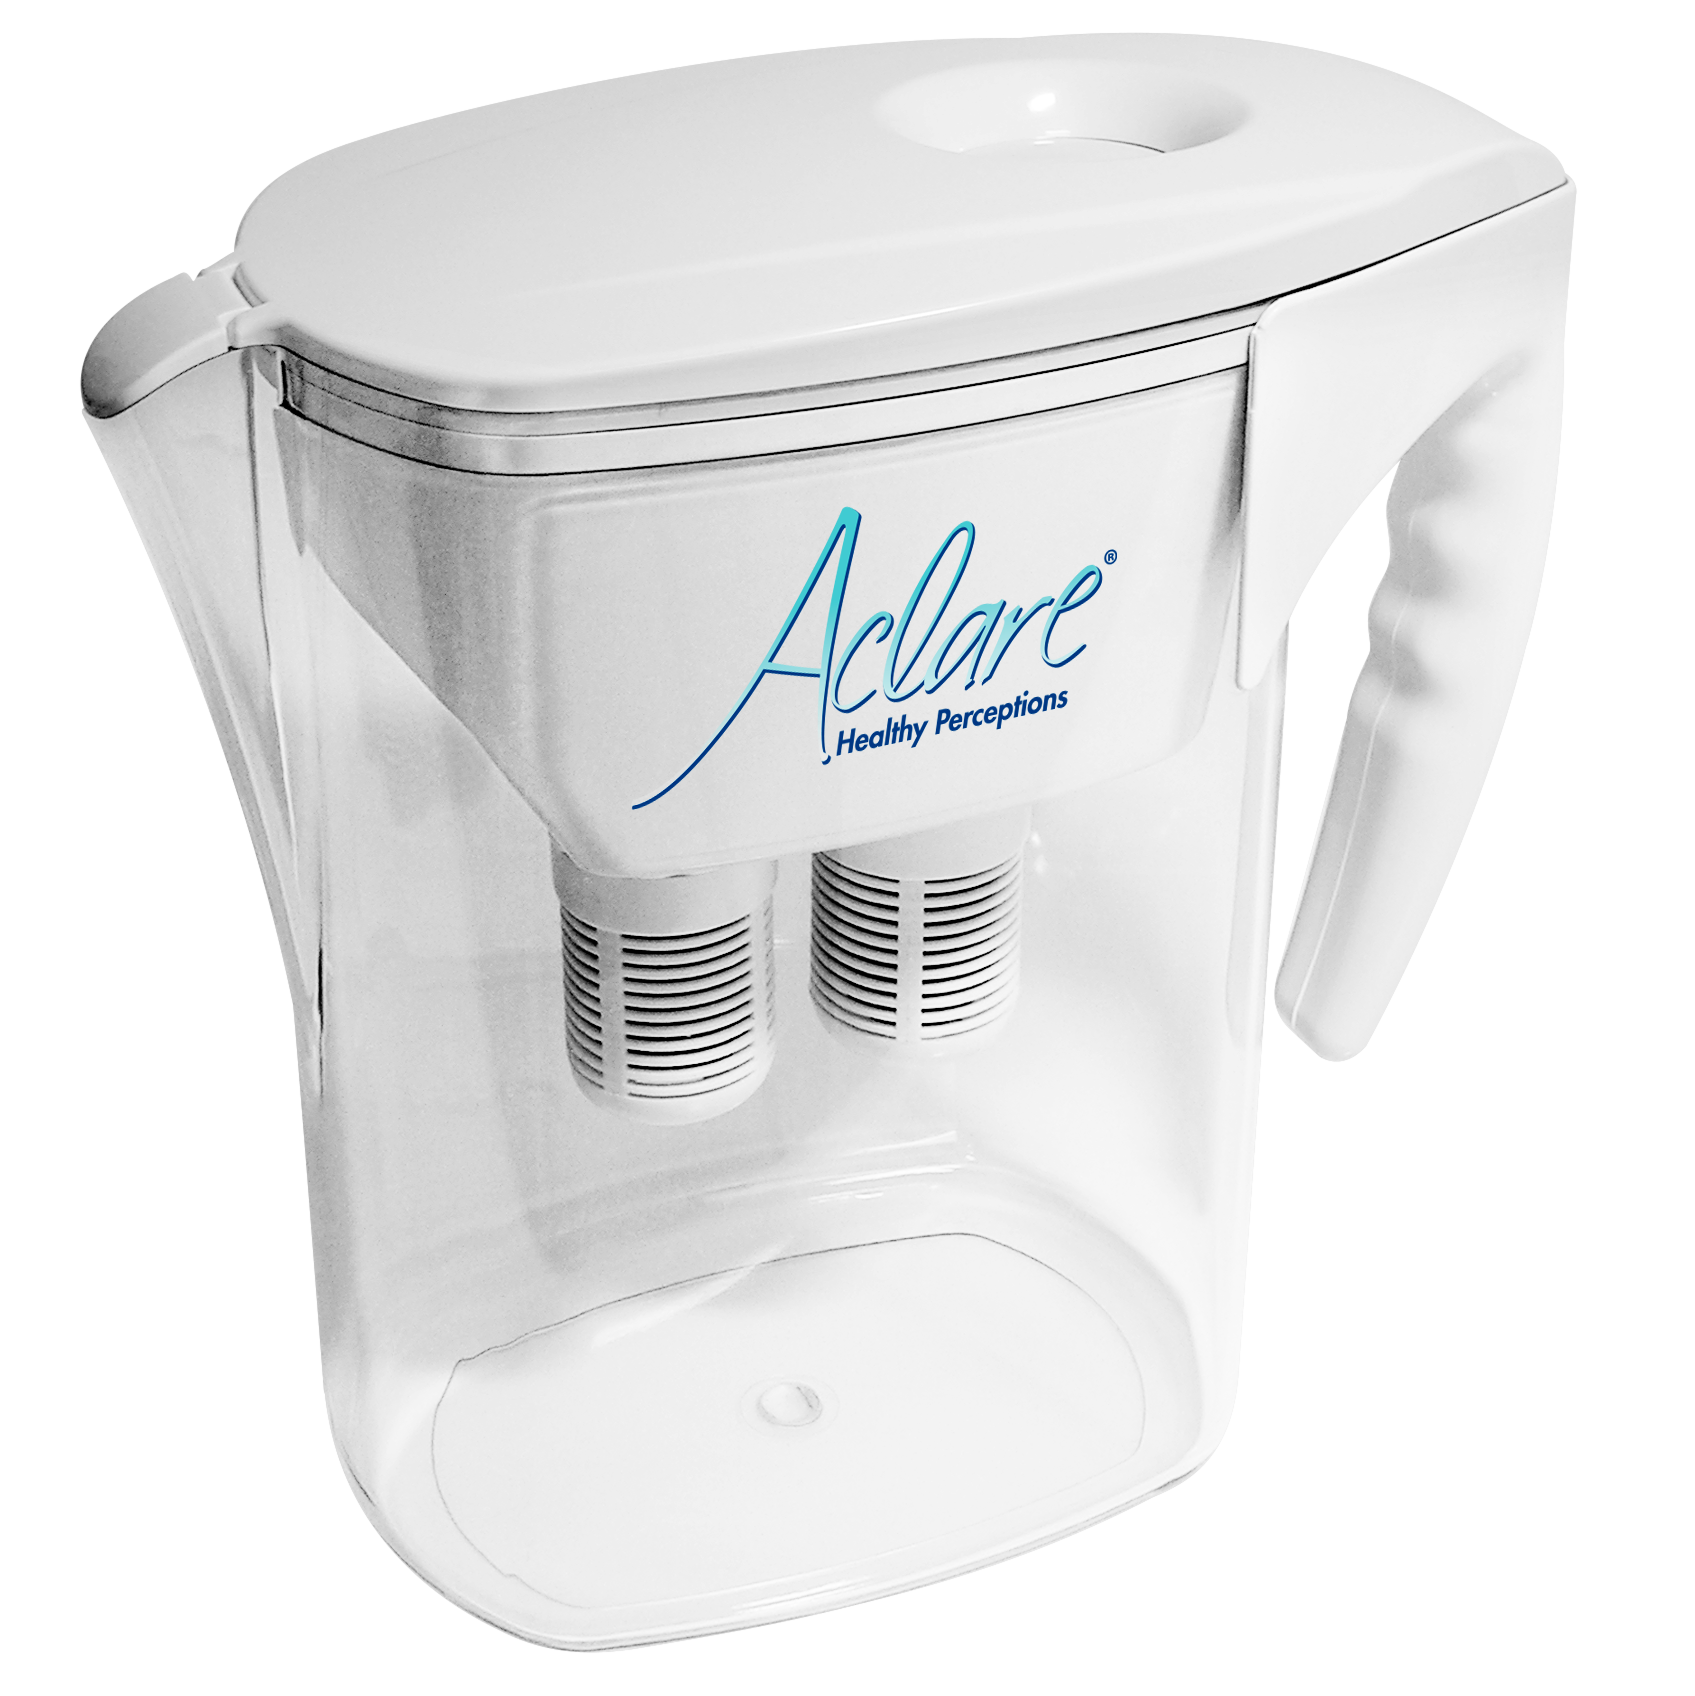 aclare water pitcher new generation 2 aclare by waterwise. Black Bedroom Furniture Sets. Home Design Ideas